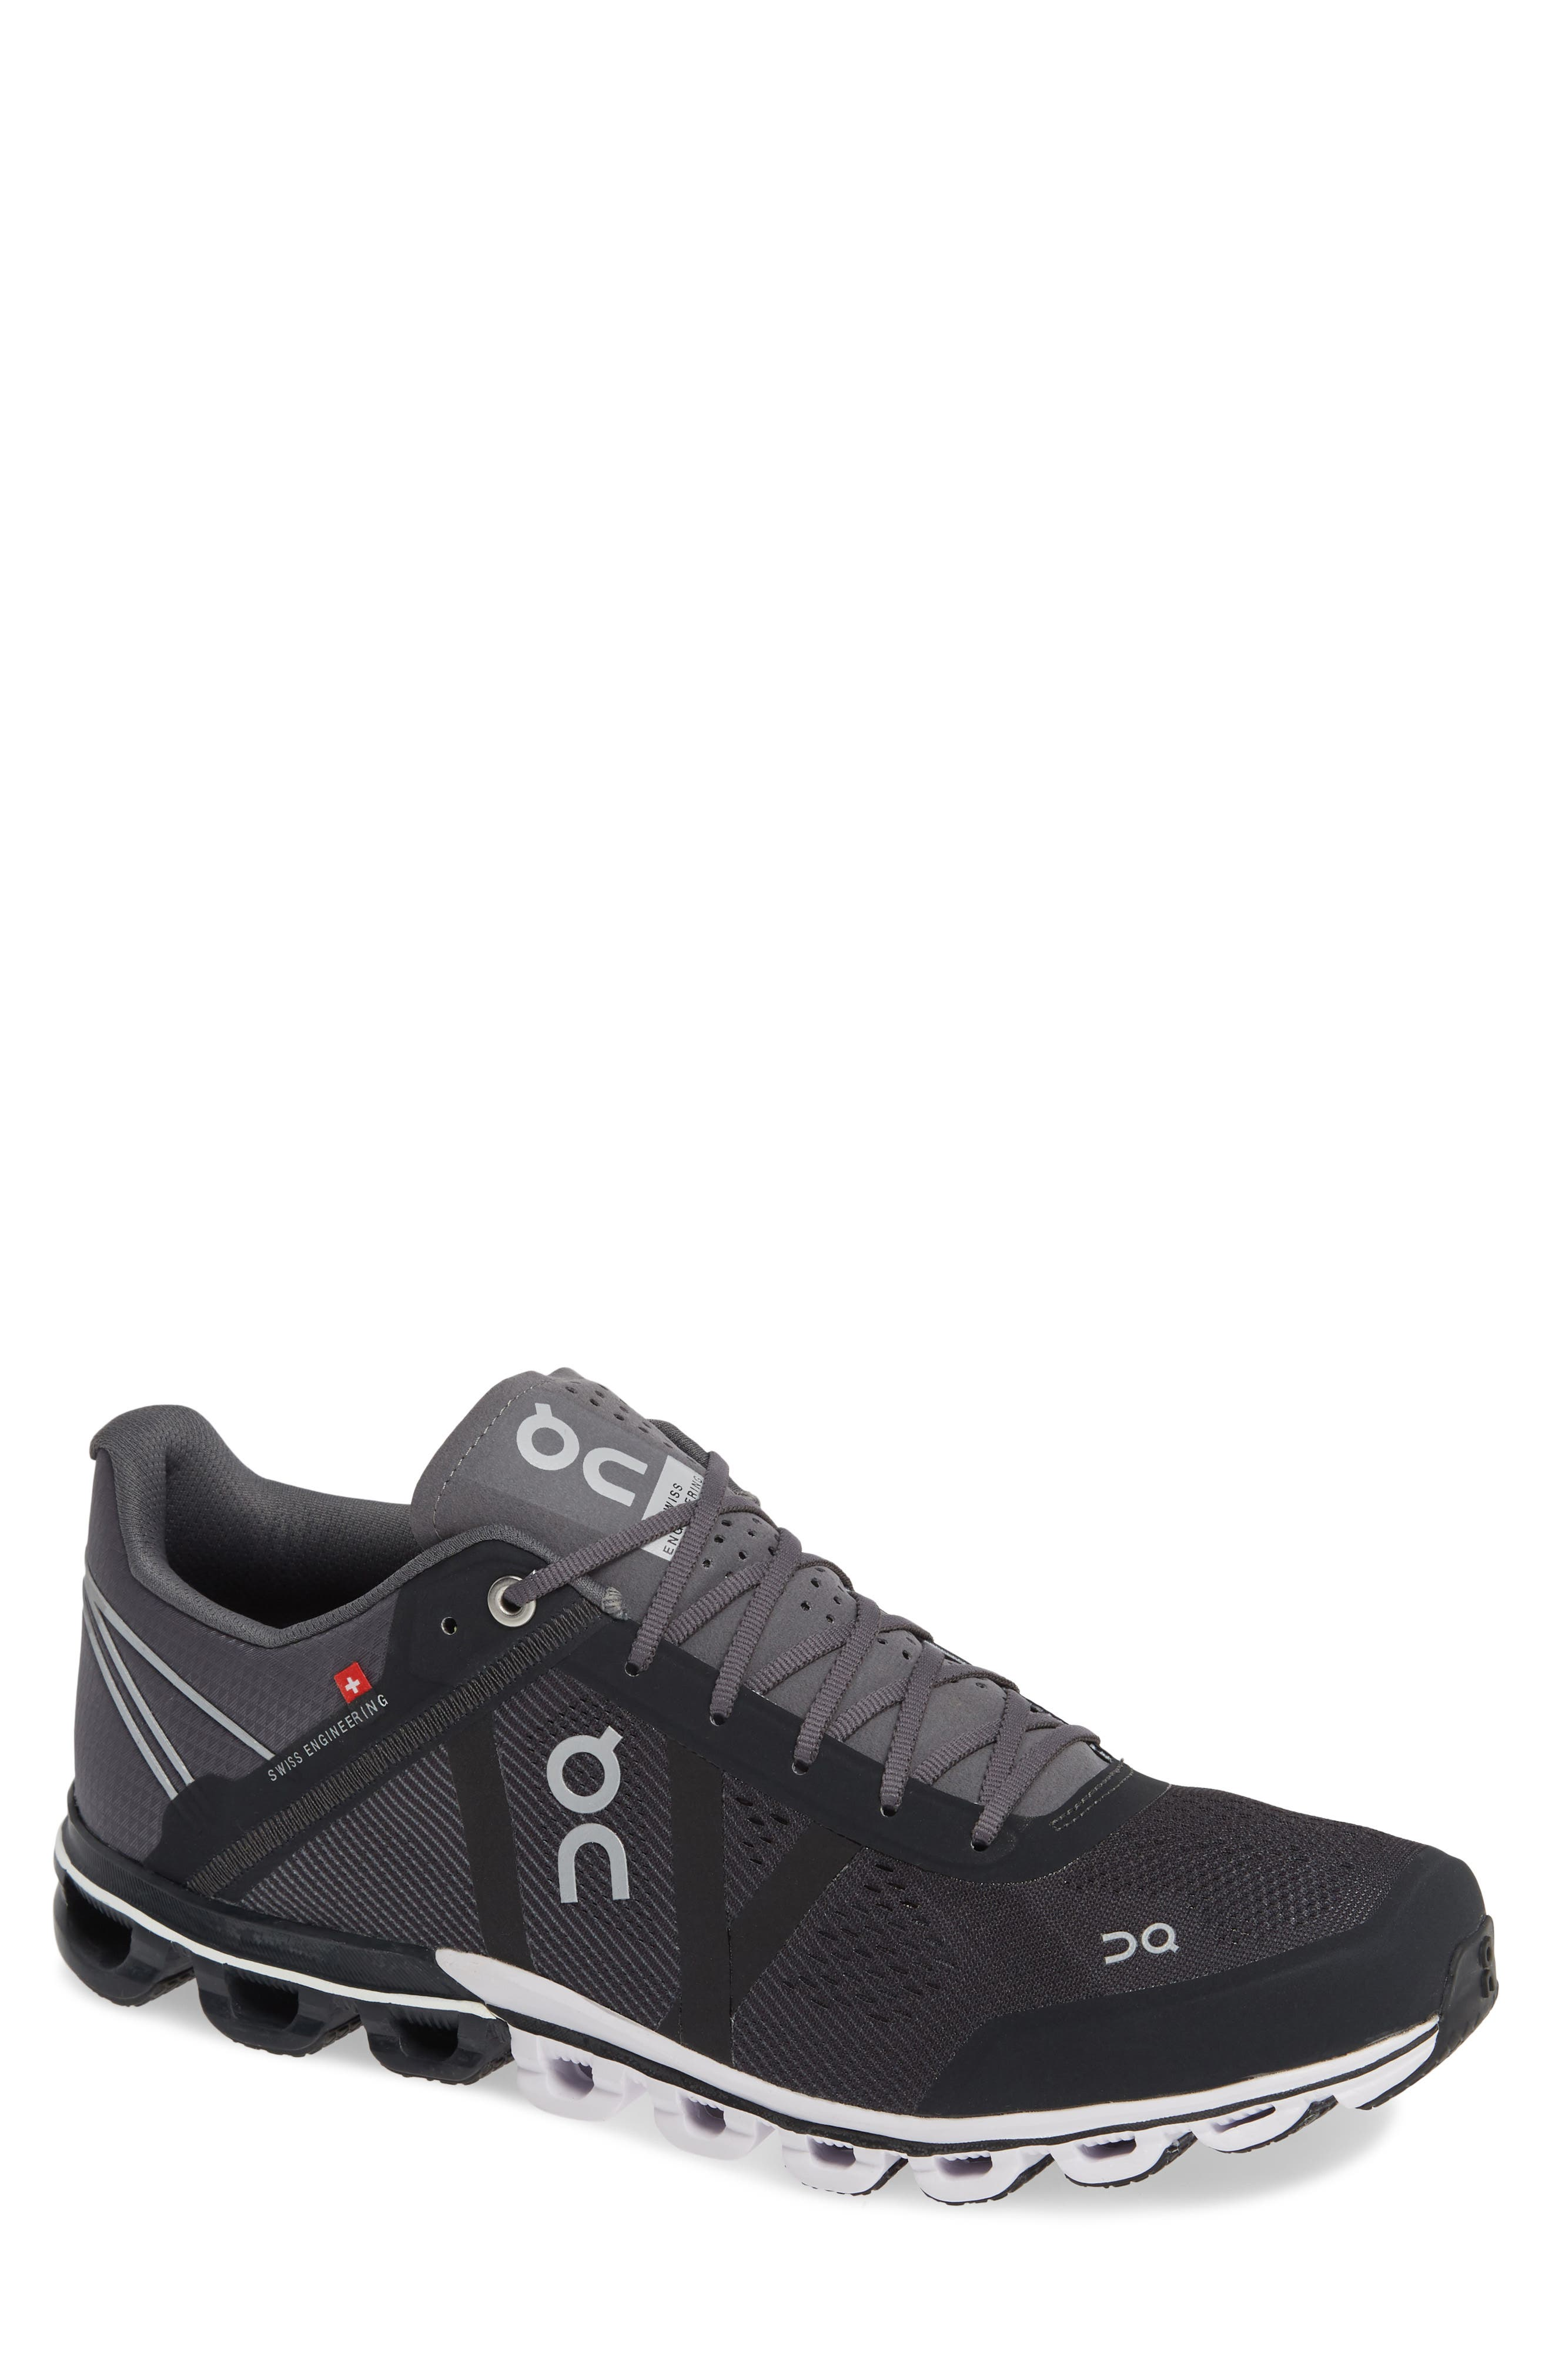 ON RUNNING Cloudflow Running Shoe, Main, color, BLACK/ CEMENT MESH